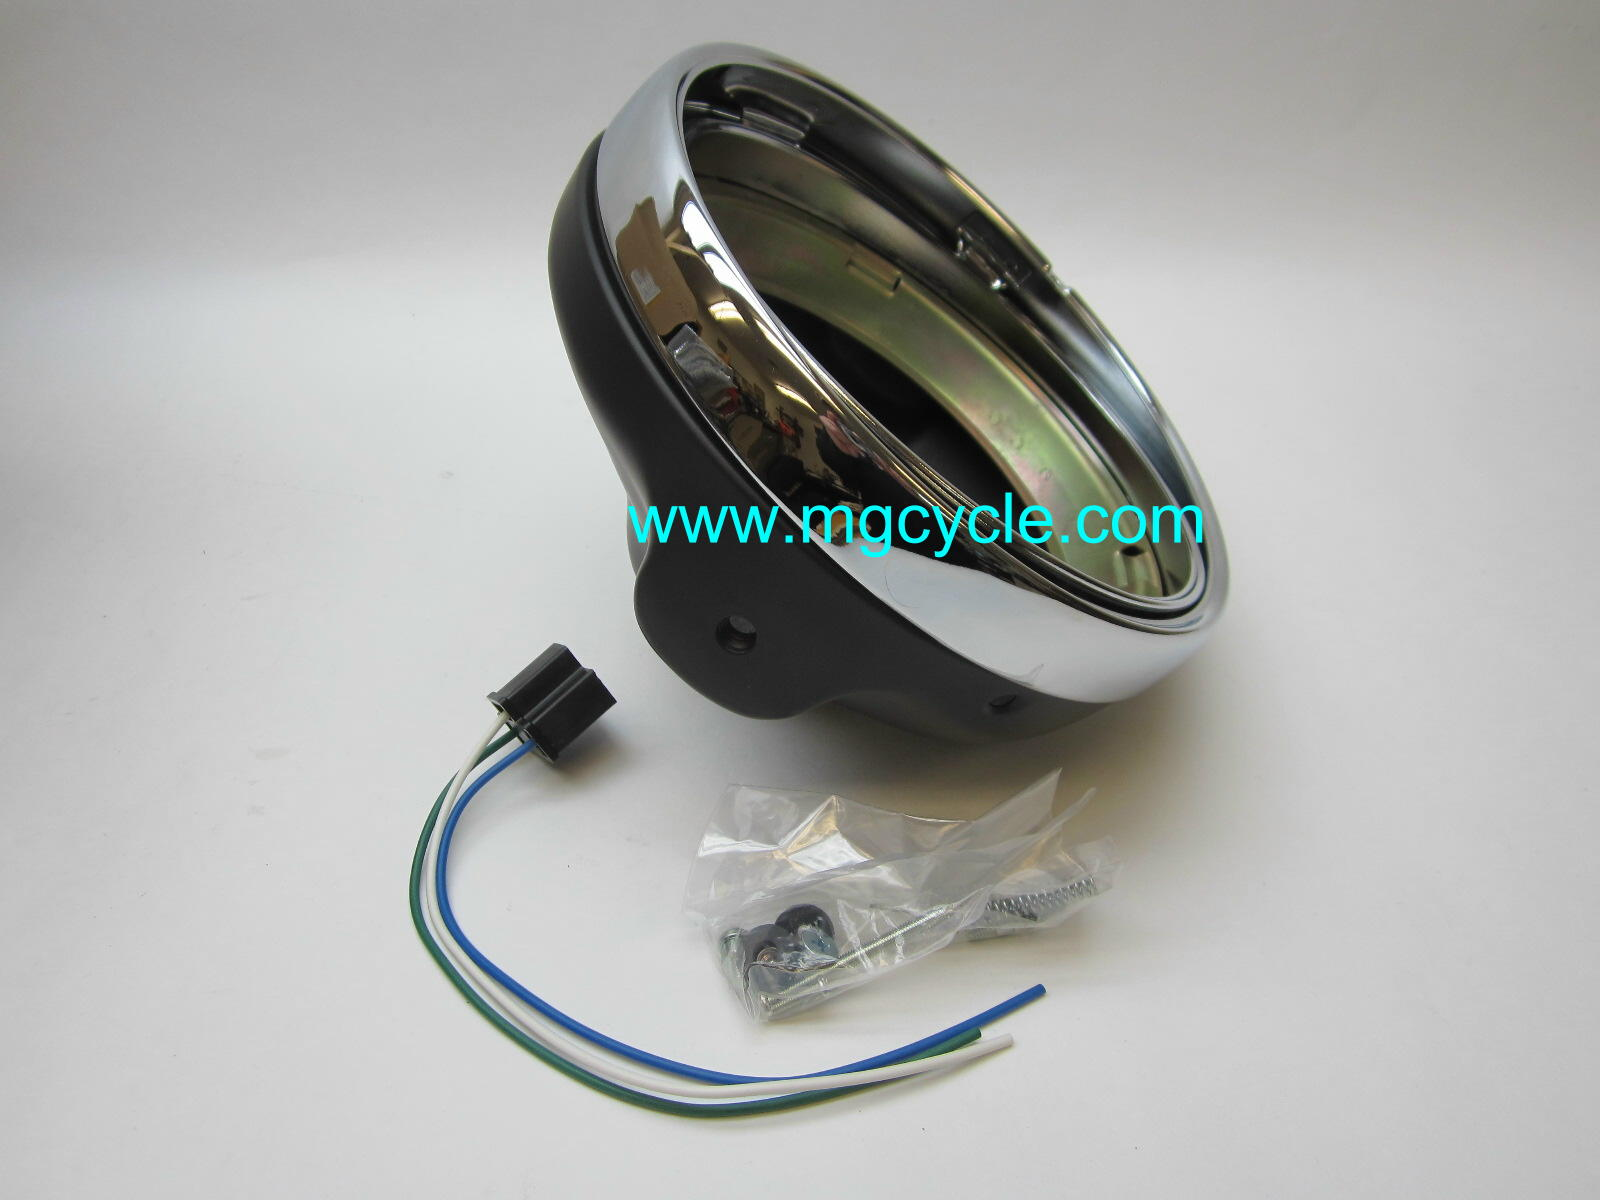 hight resolution of 7 headlight bucket kit black back with chrome trim ring